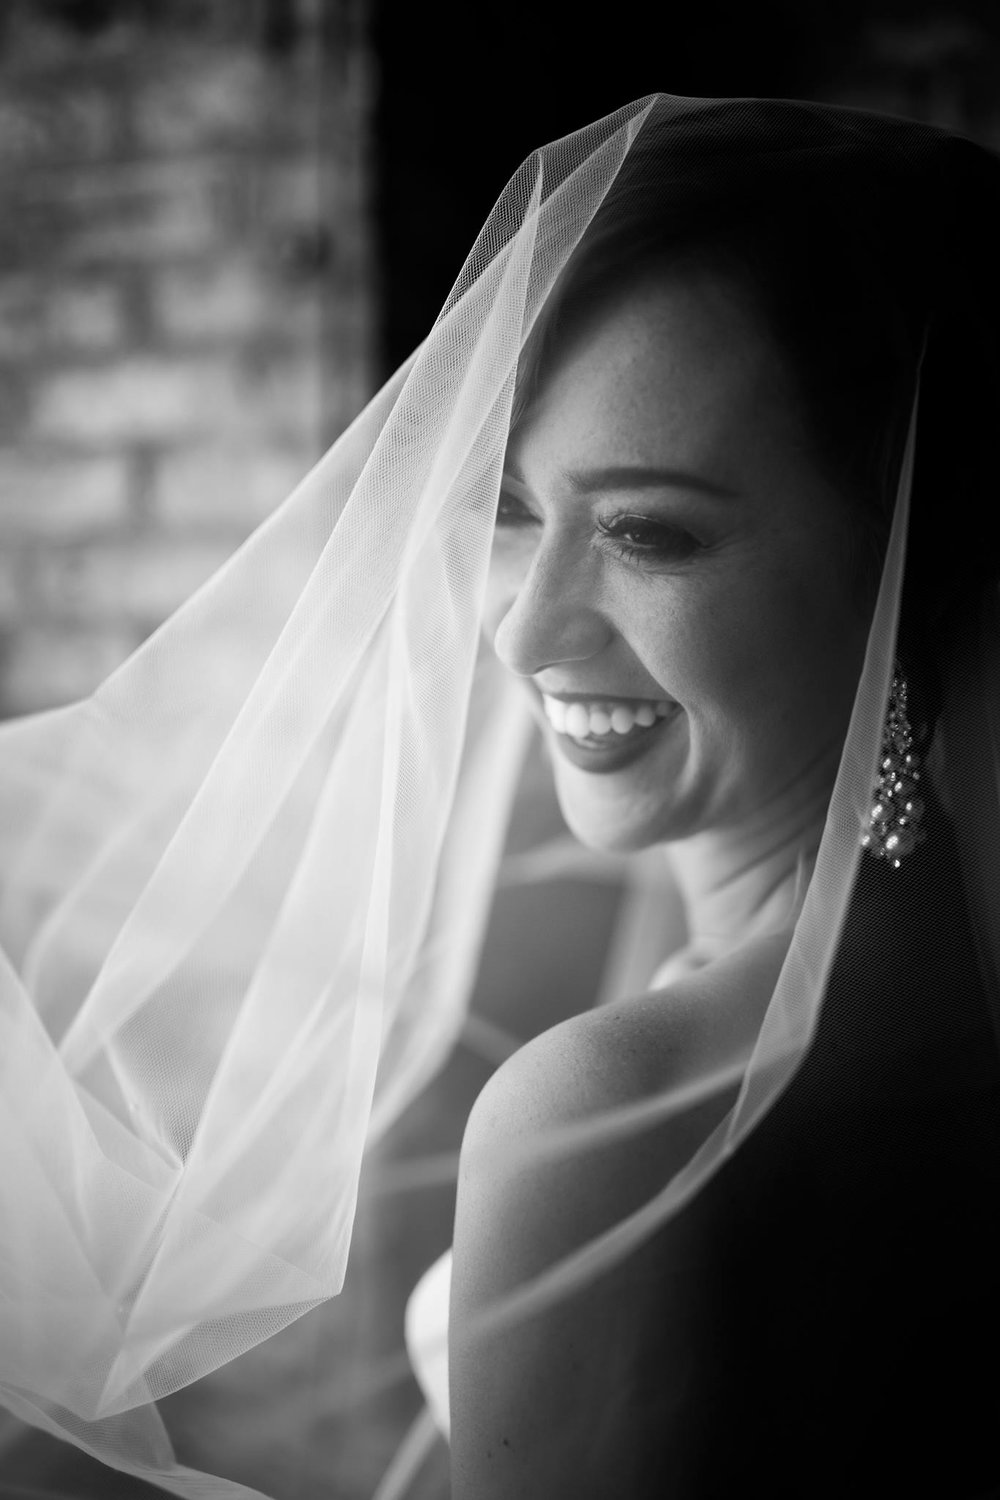 TOLEDO MAKEUP ARTIST. Bridal Makeup in Ohio. Styled shoot with Captured by Hannah Photography, Hafner Florist, Event Prep. Airbrush Makeup Toledo, OH. April 2017.2.jpg